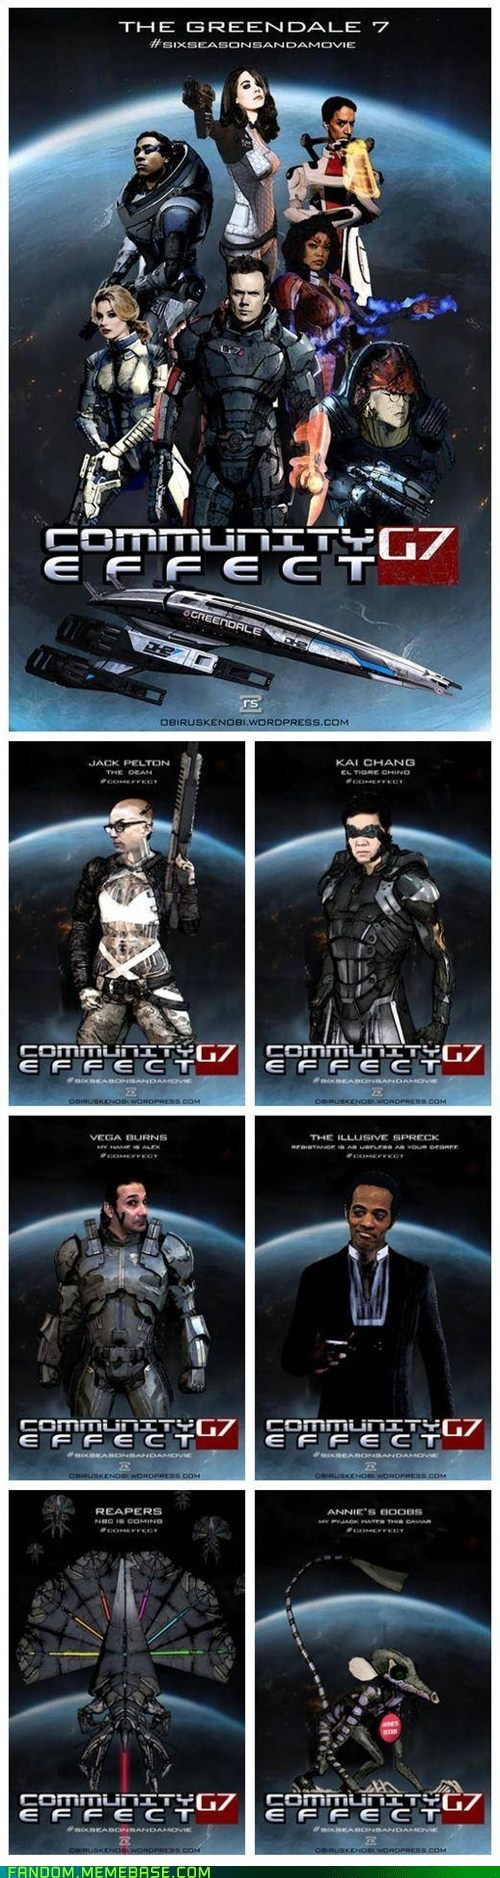 community,crossover,Fan Art,mass effect,TV,video games